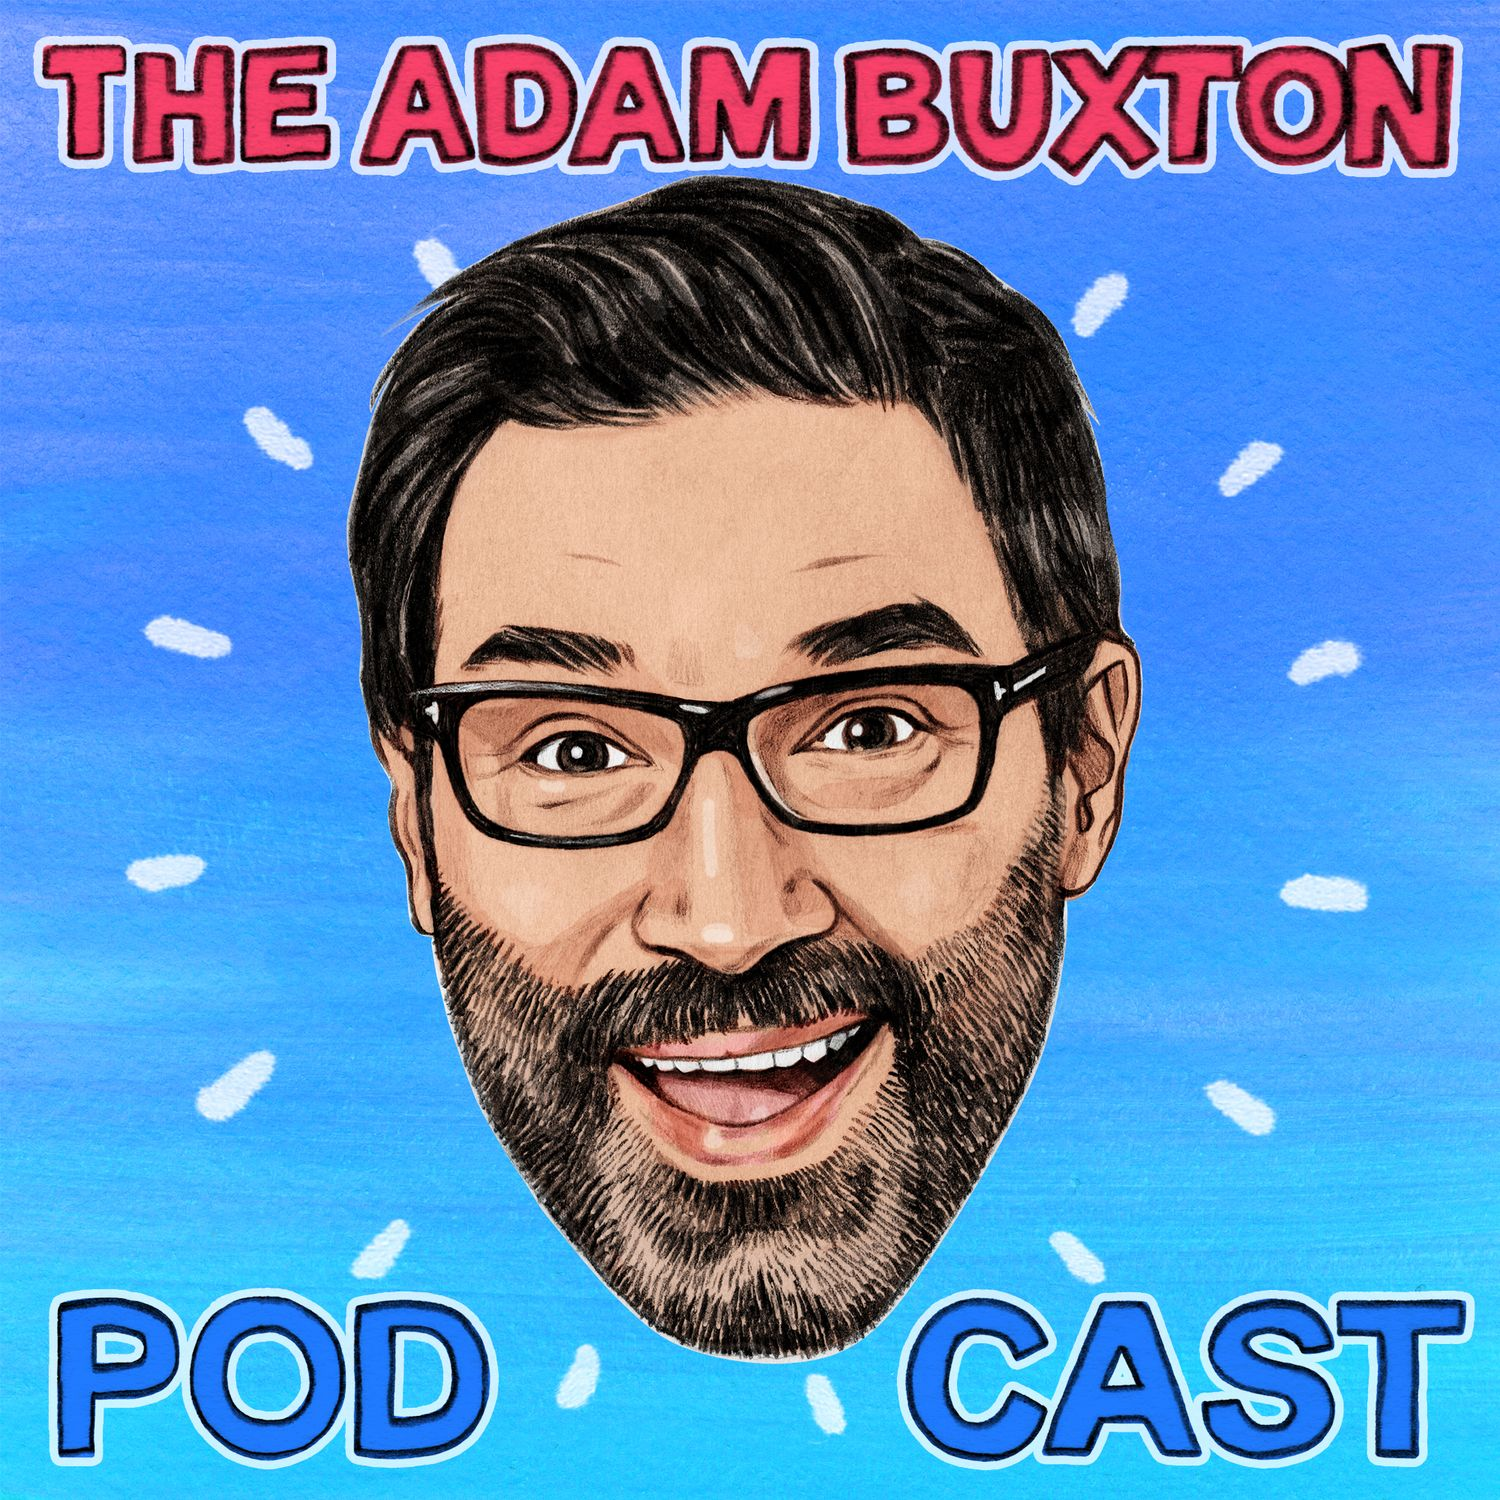 THE ADAM BUXTON PODCAST on Smash Notes